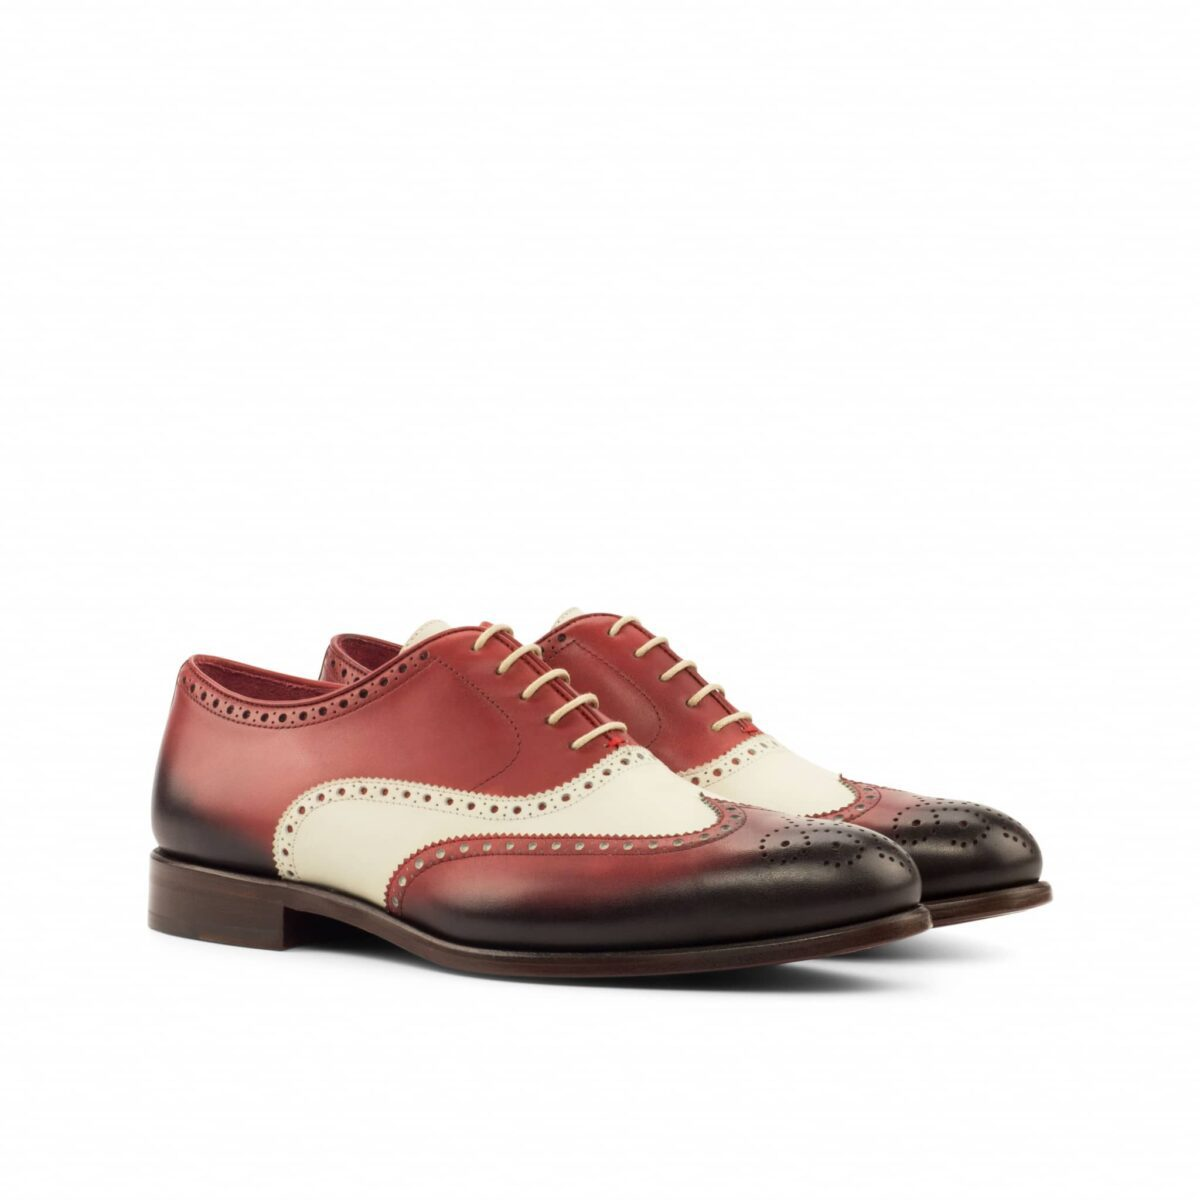 Custom Made Wingtips in Burnished Red Painted Calf with Natural Crust Calf